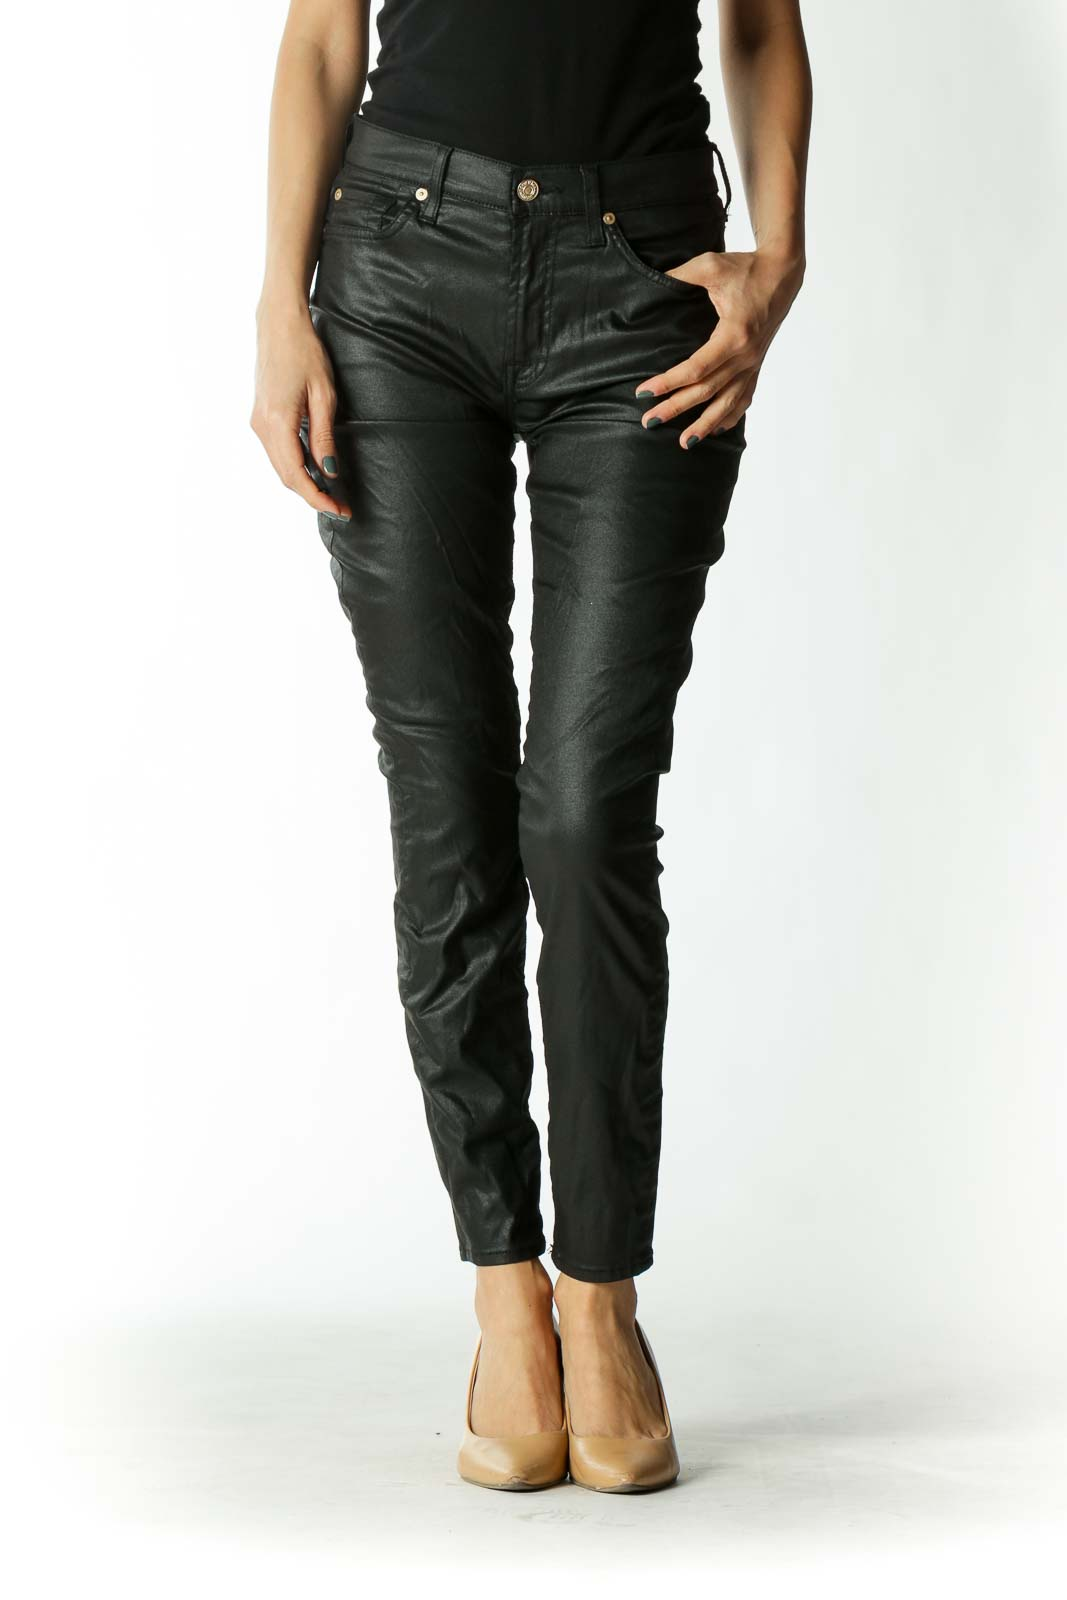 Black Waxed Mid-Rise Skinny Jeans with Gold Embellishments